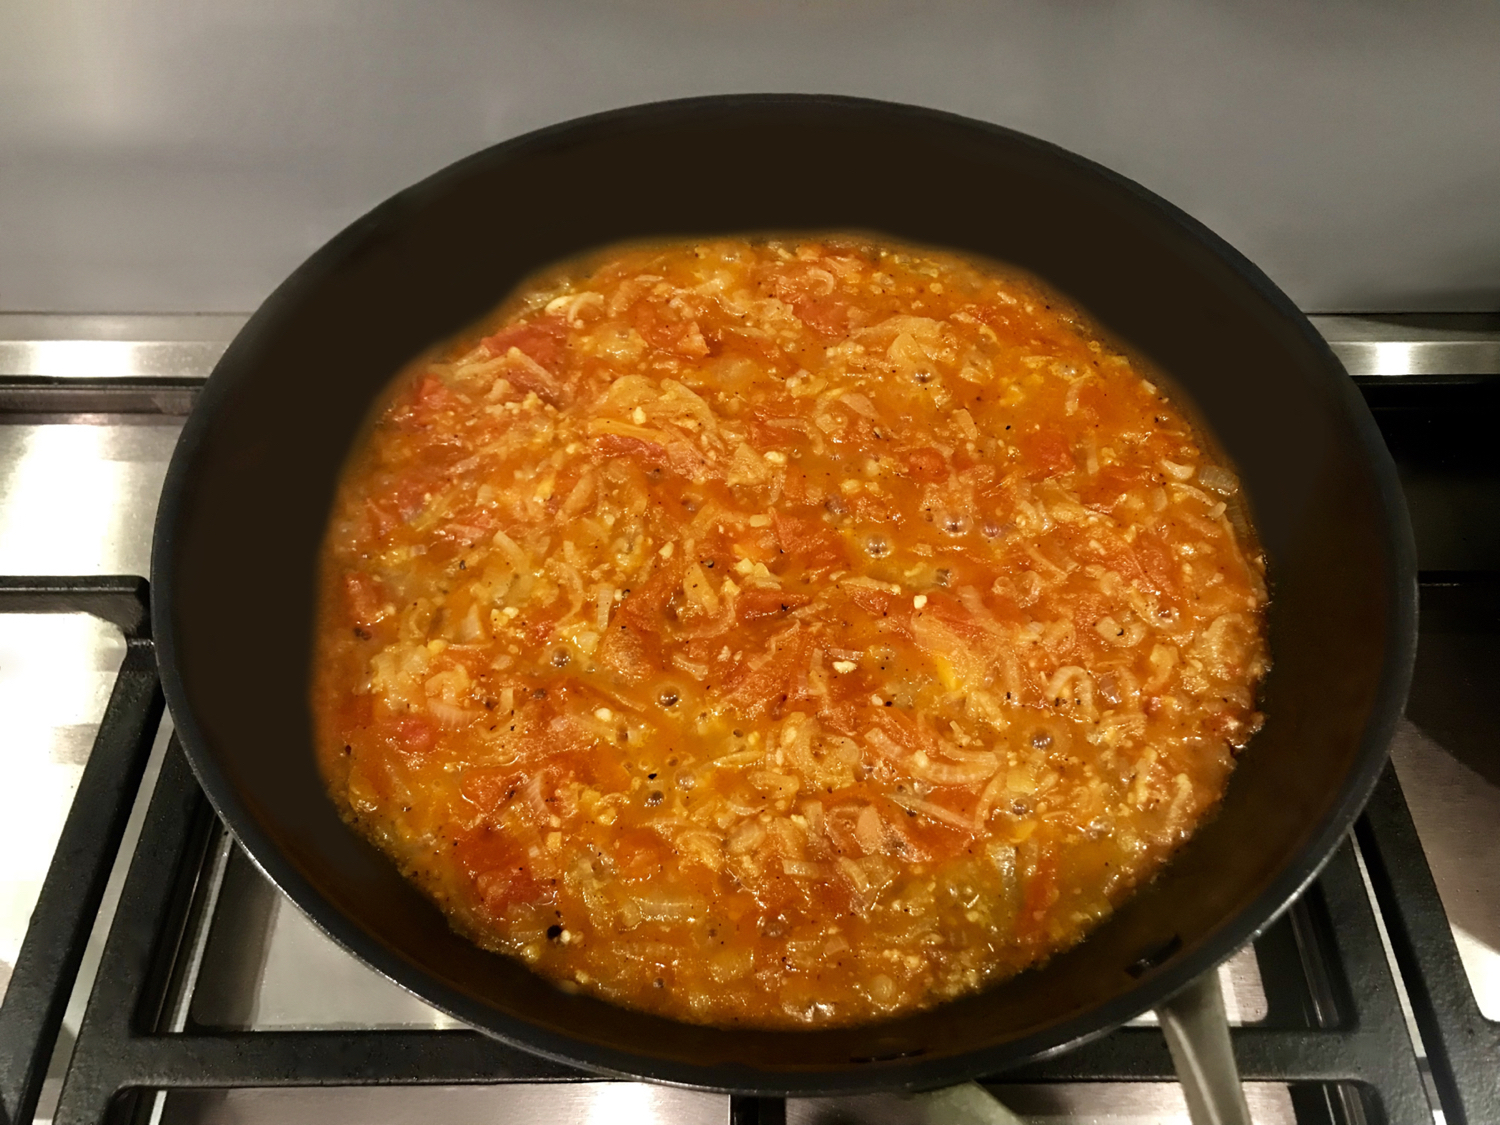 SugarDoctor Recipe tomato sauce in a frying pan